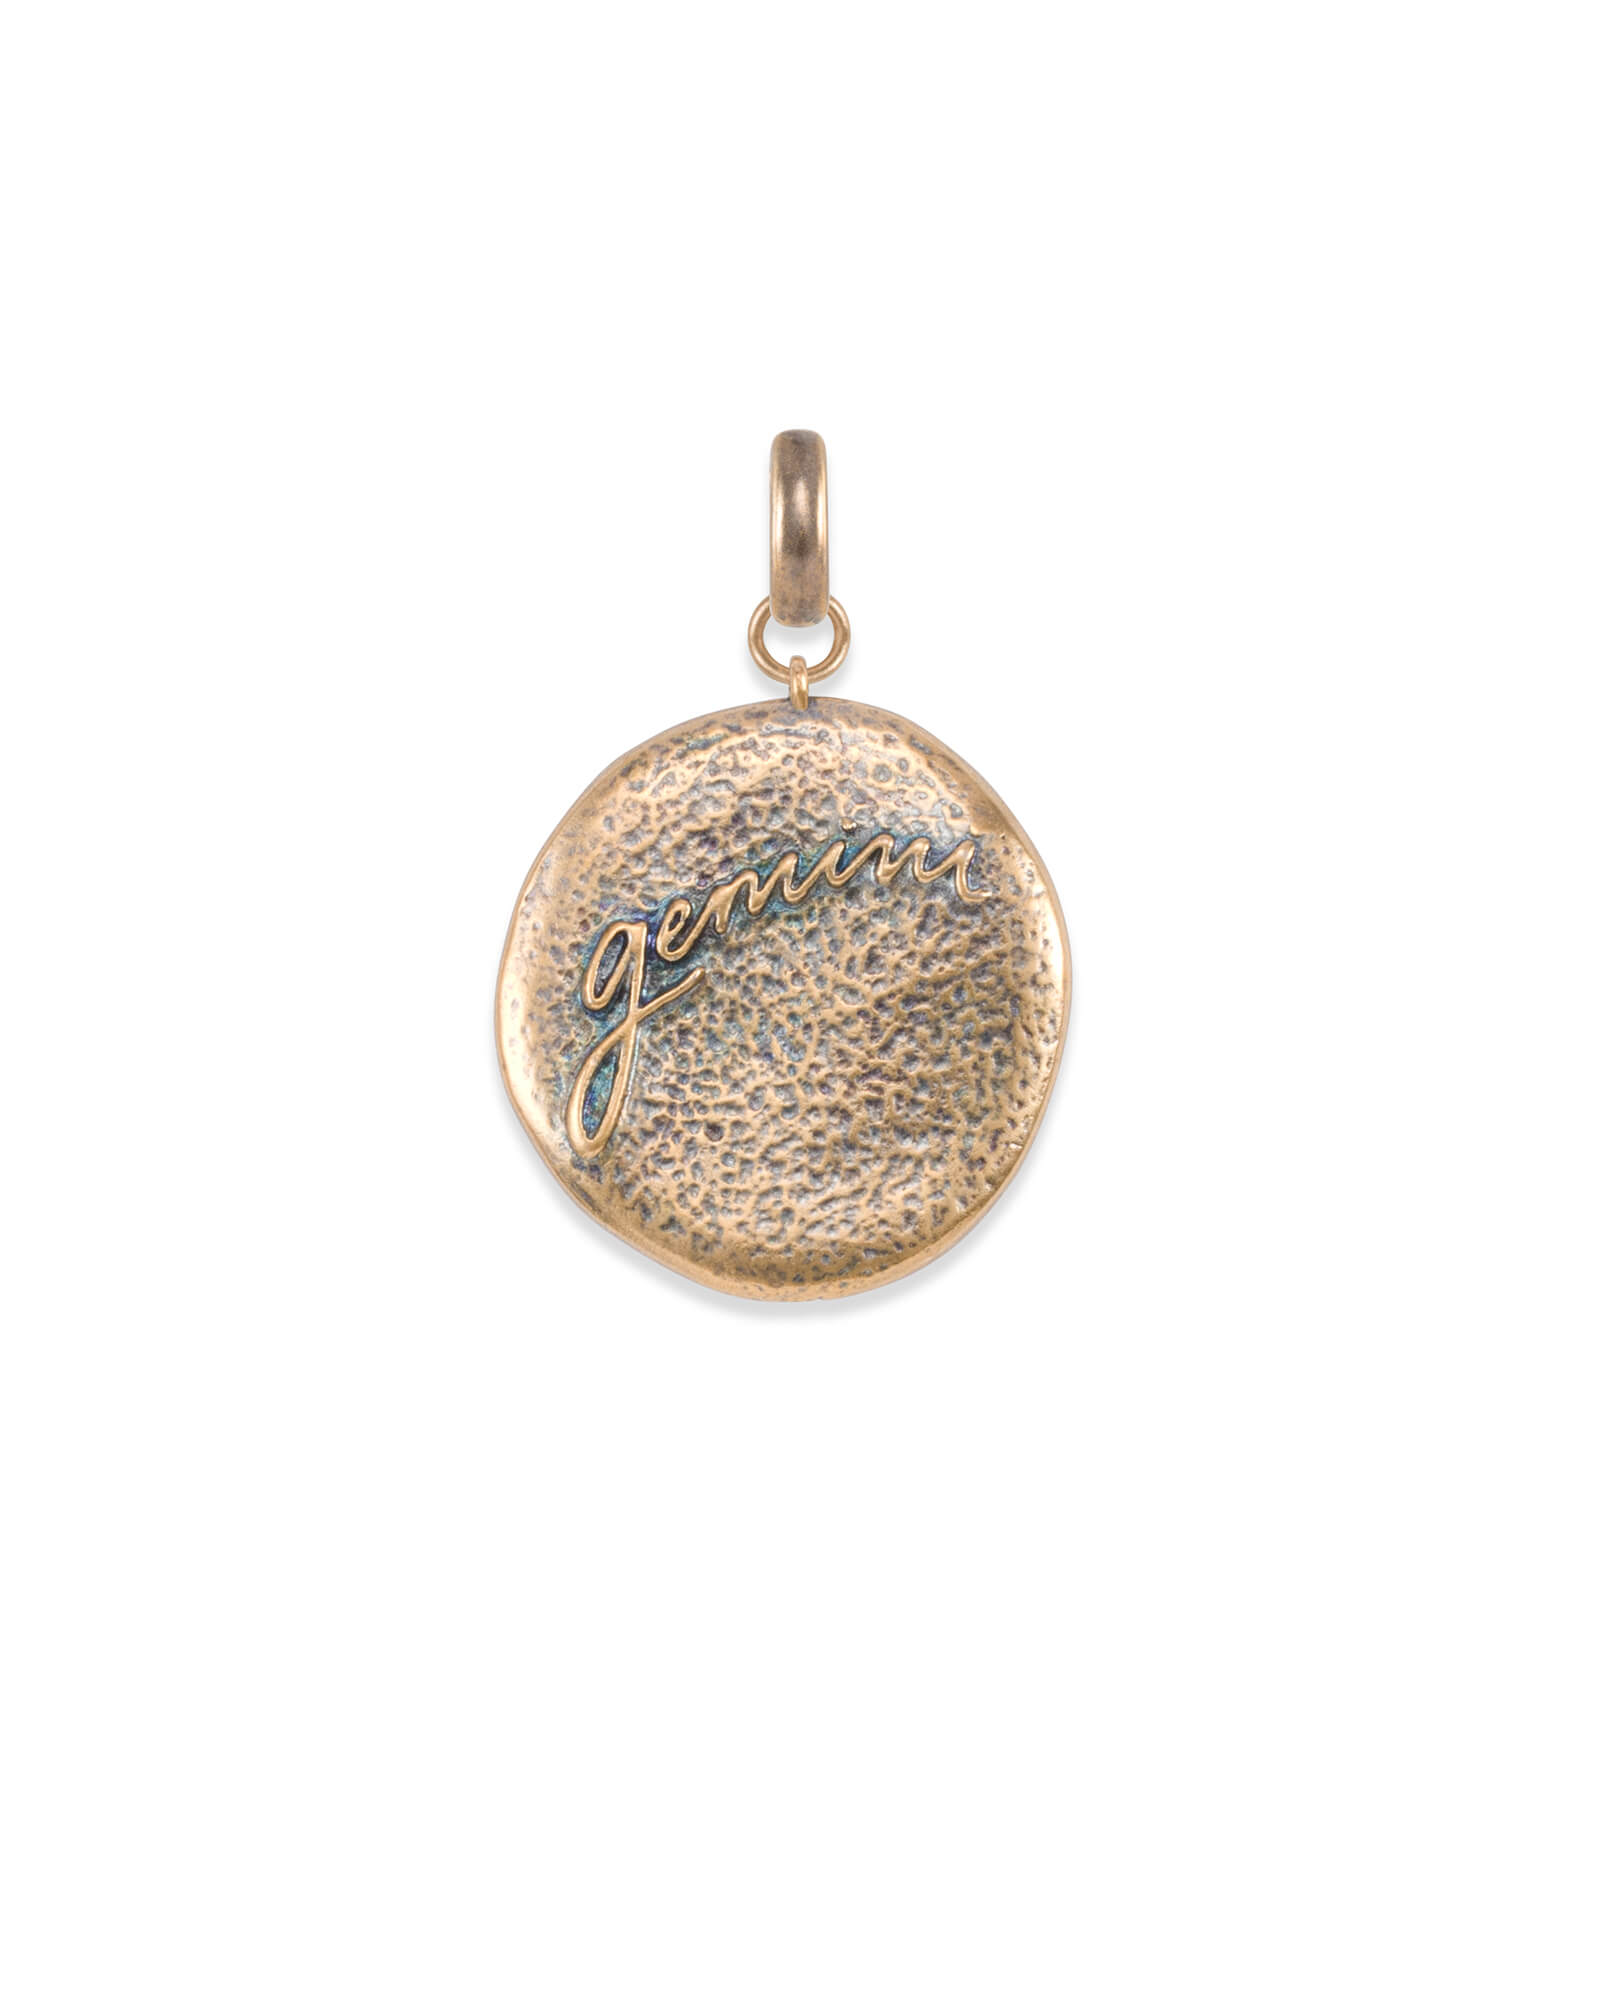 Gemini Coin Charm in Vintage Gold